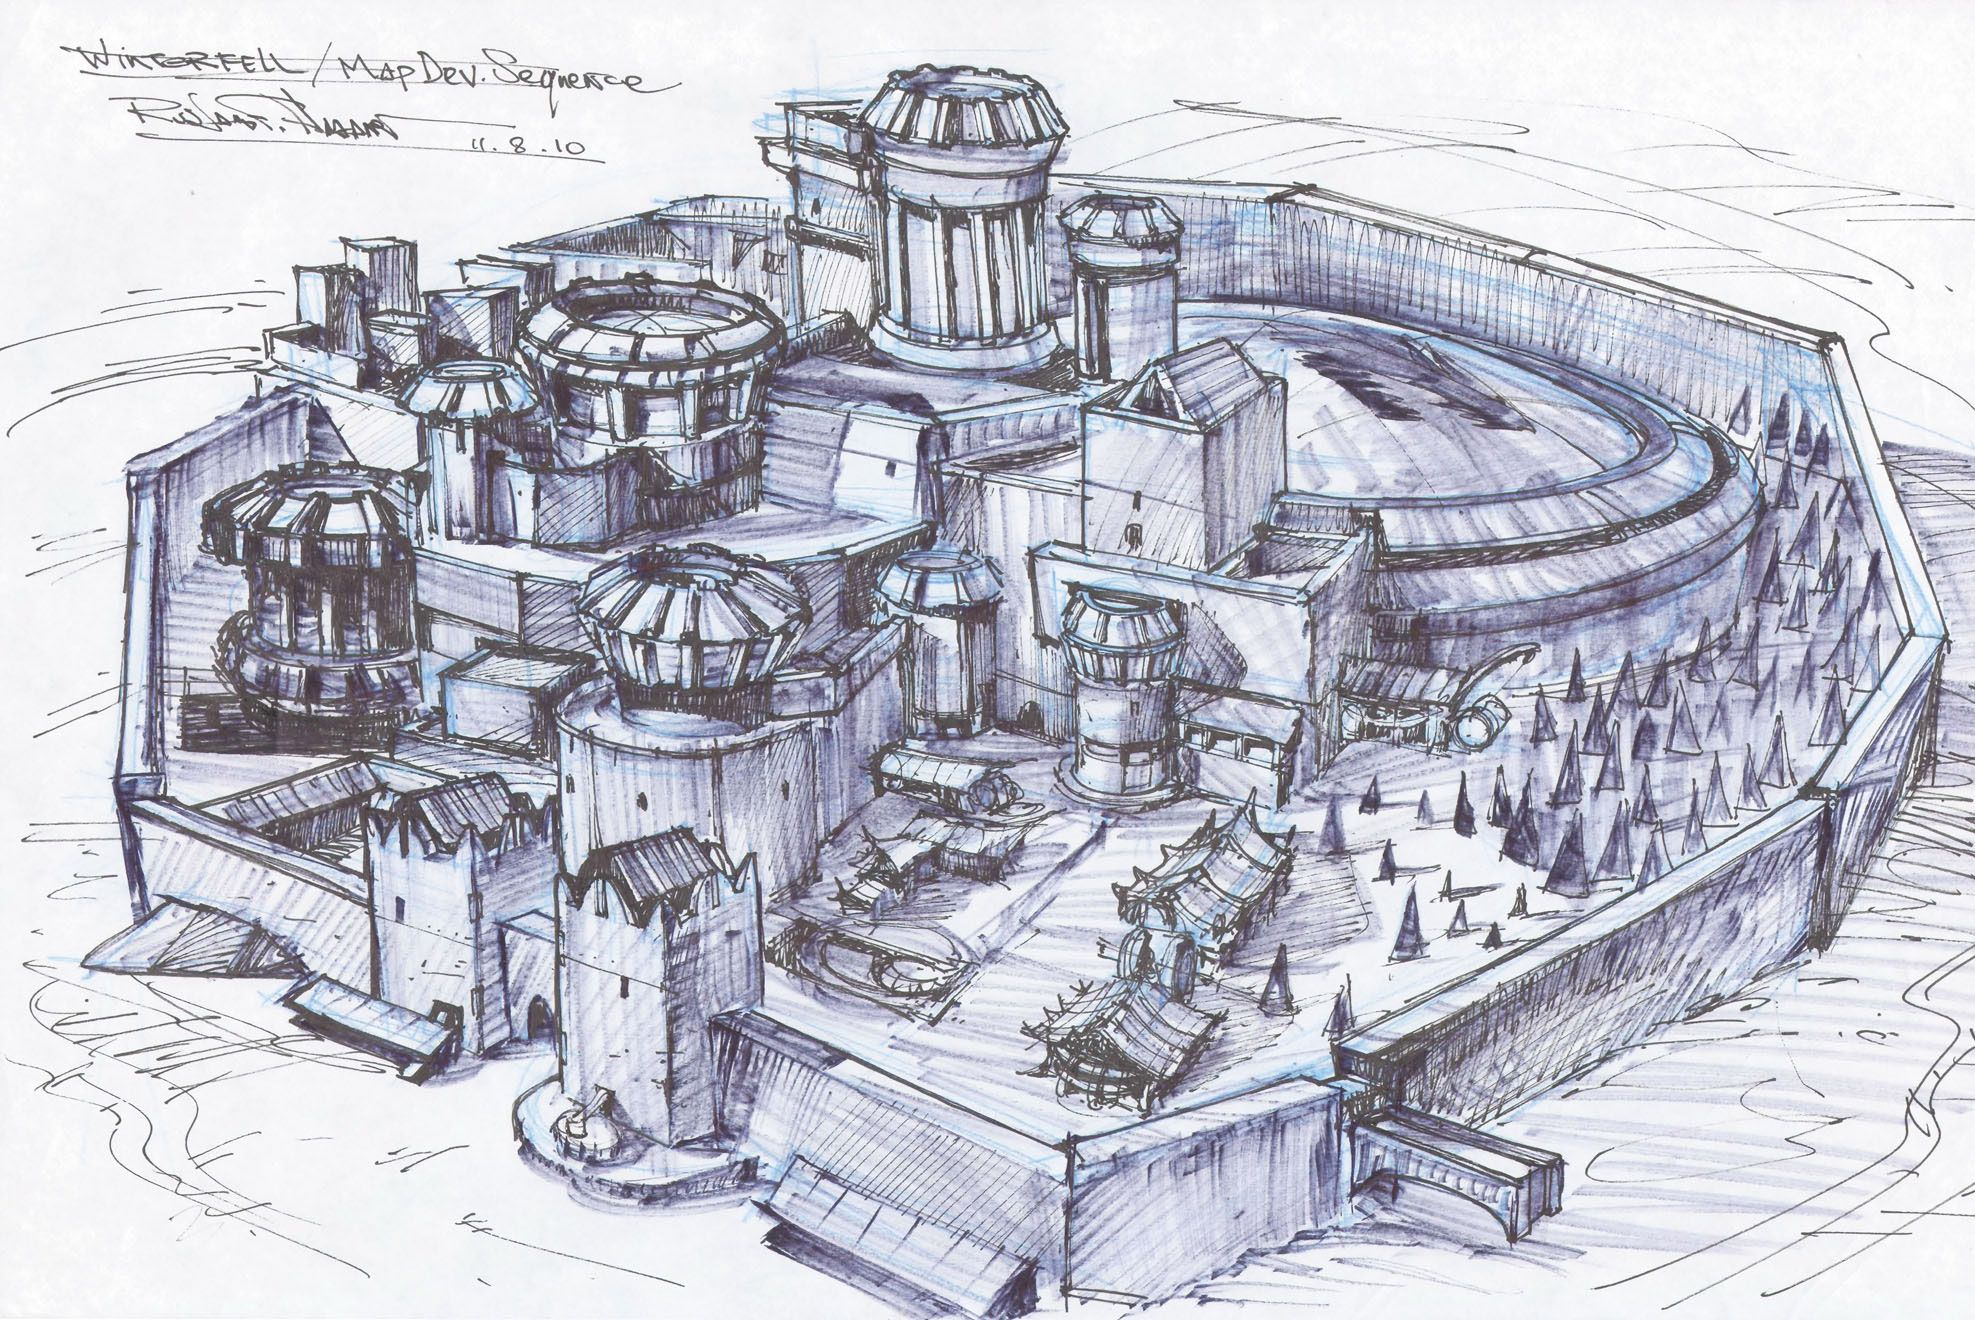 Winterfell sketch in 2020 | Game of thrones castles, Art of ... on spooksville map, downton abbey map, narnia map, bloodline map, got map, justified map, jericho map, qarth map, camelot map, walking dead map, a storm of swords map, gendry map, world map, star trek map, guild wars 2 map, clash of kings map, dallas map, valyria map, winterfell map, jersey shore map,